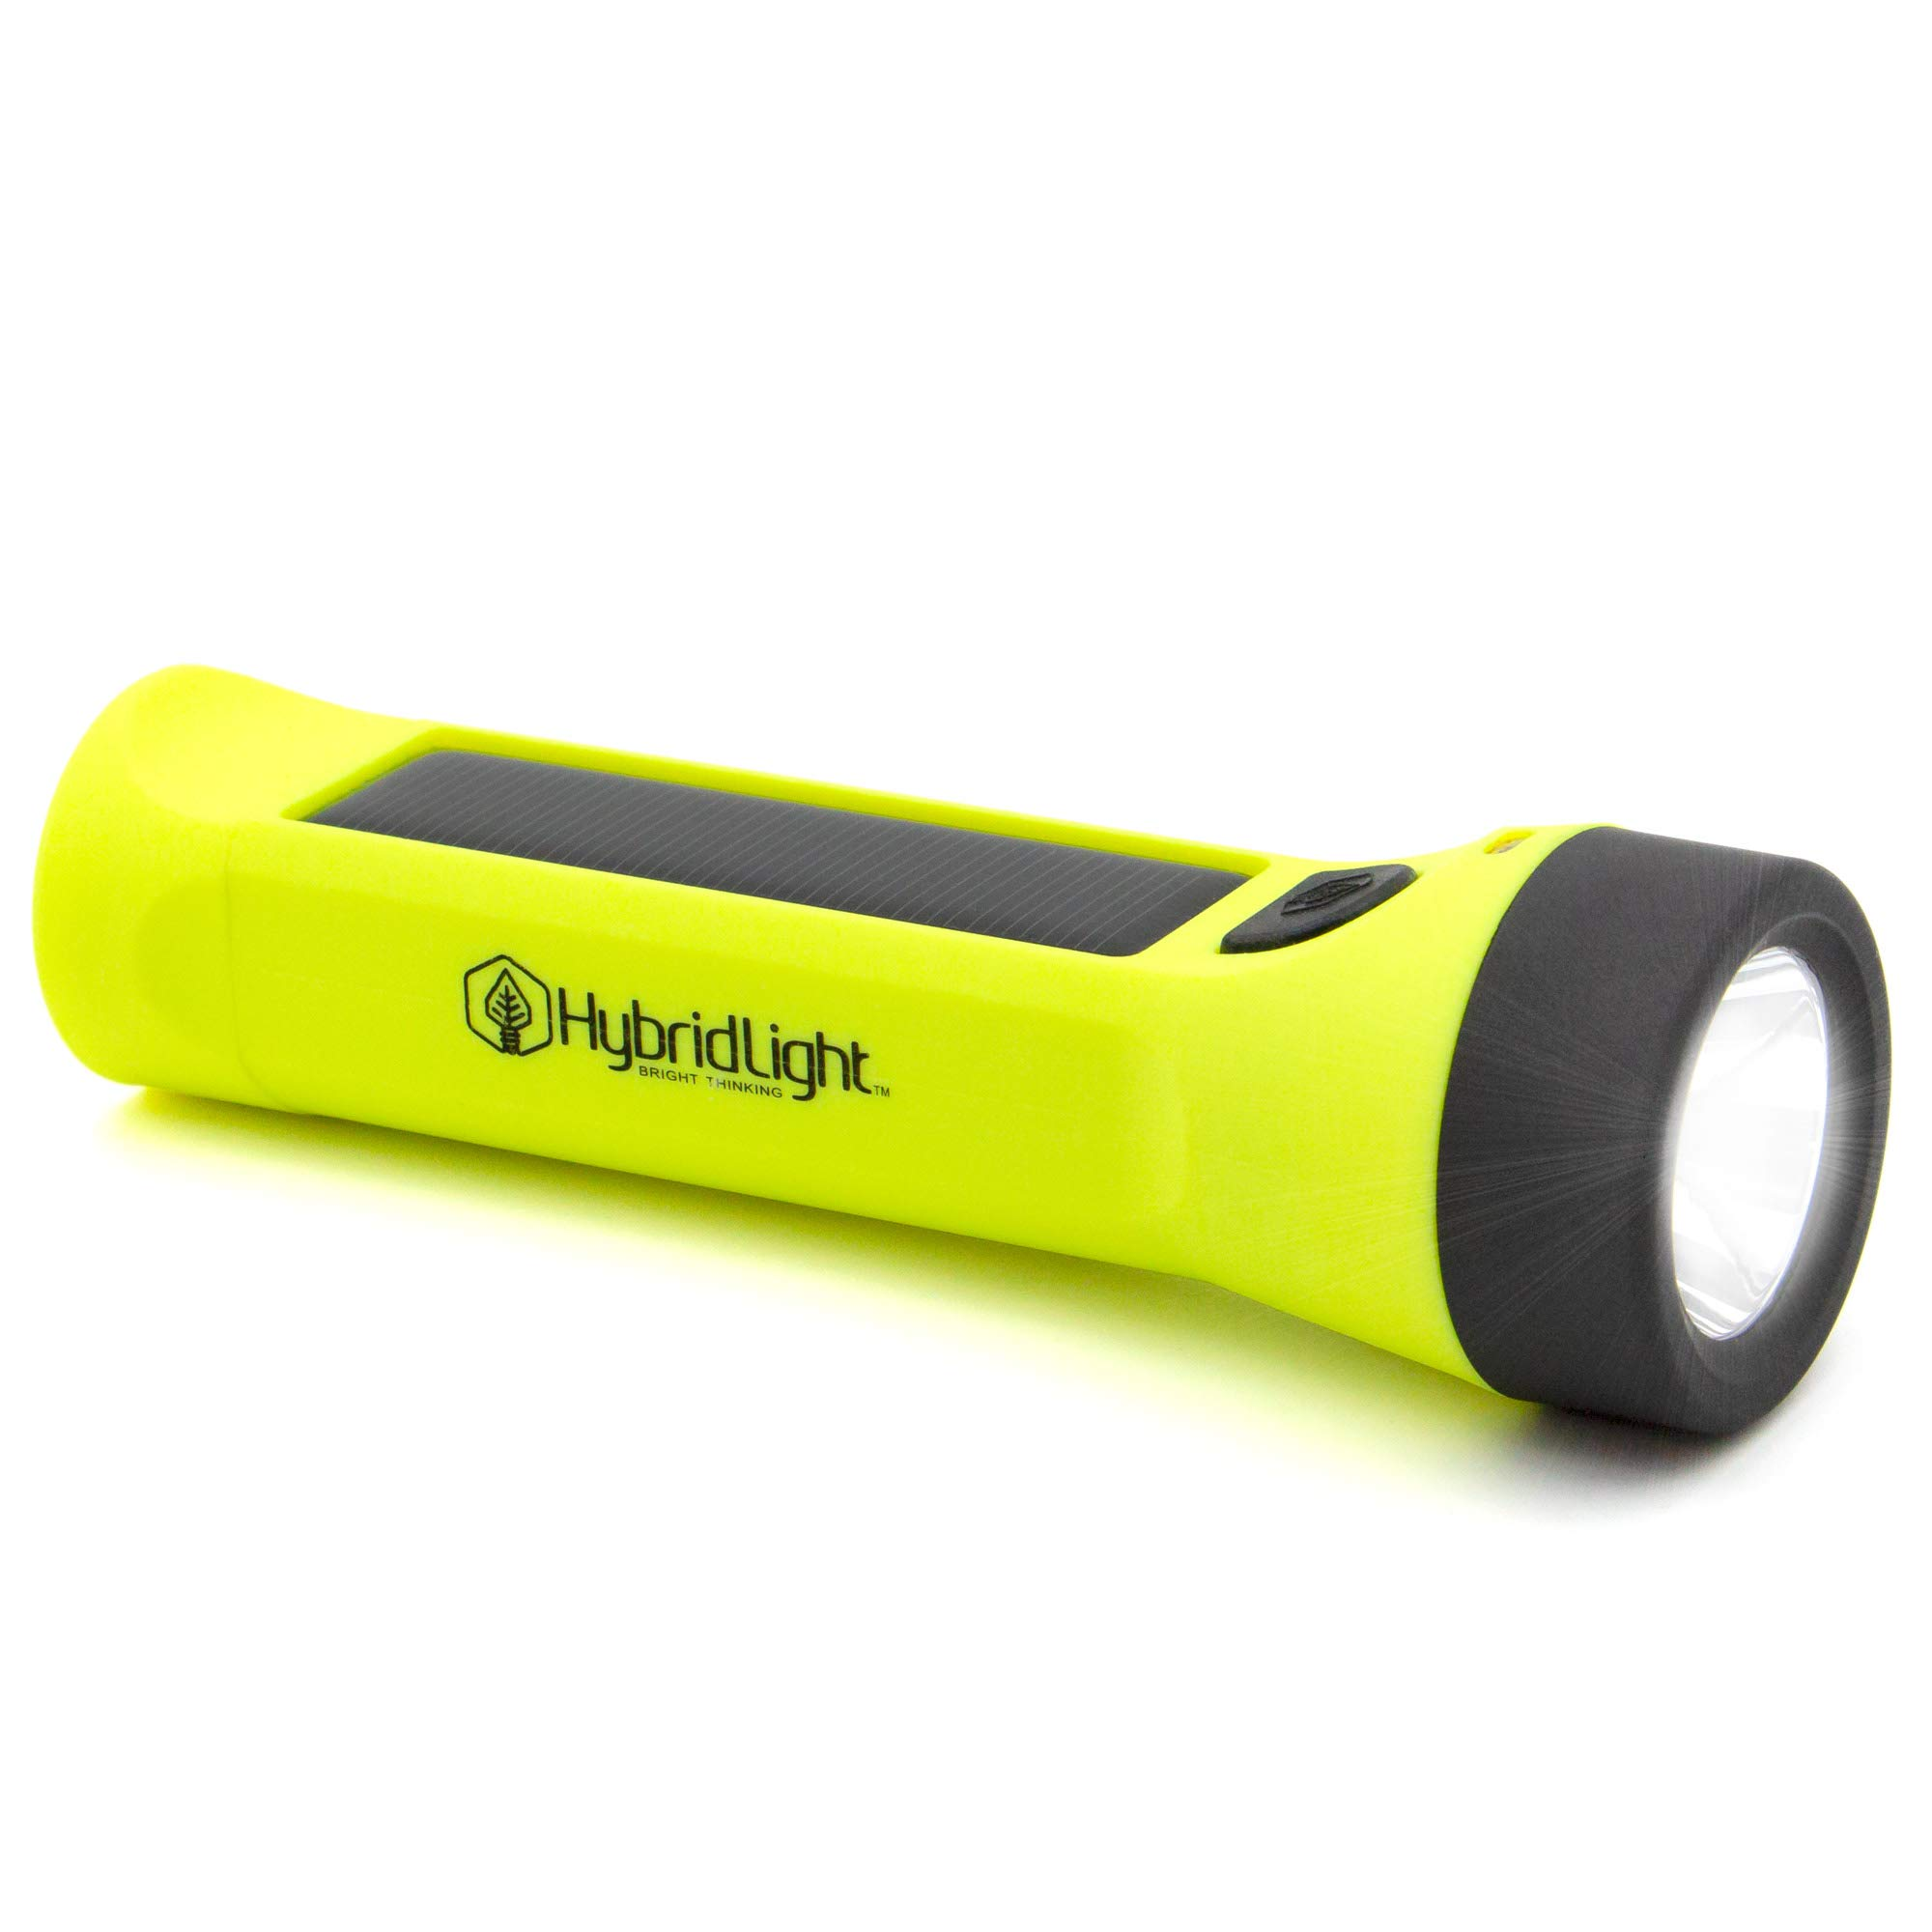 Hybridlight Rechargeable Waterproof Flashlight Included